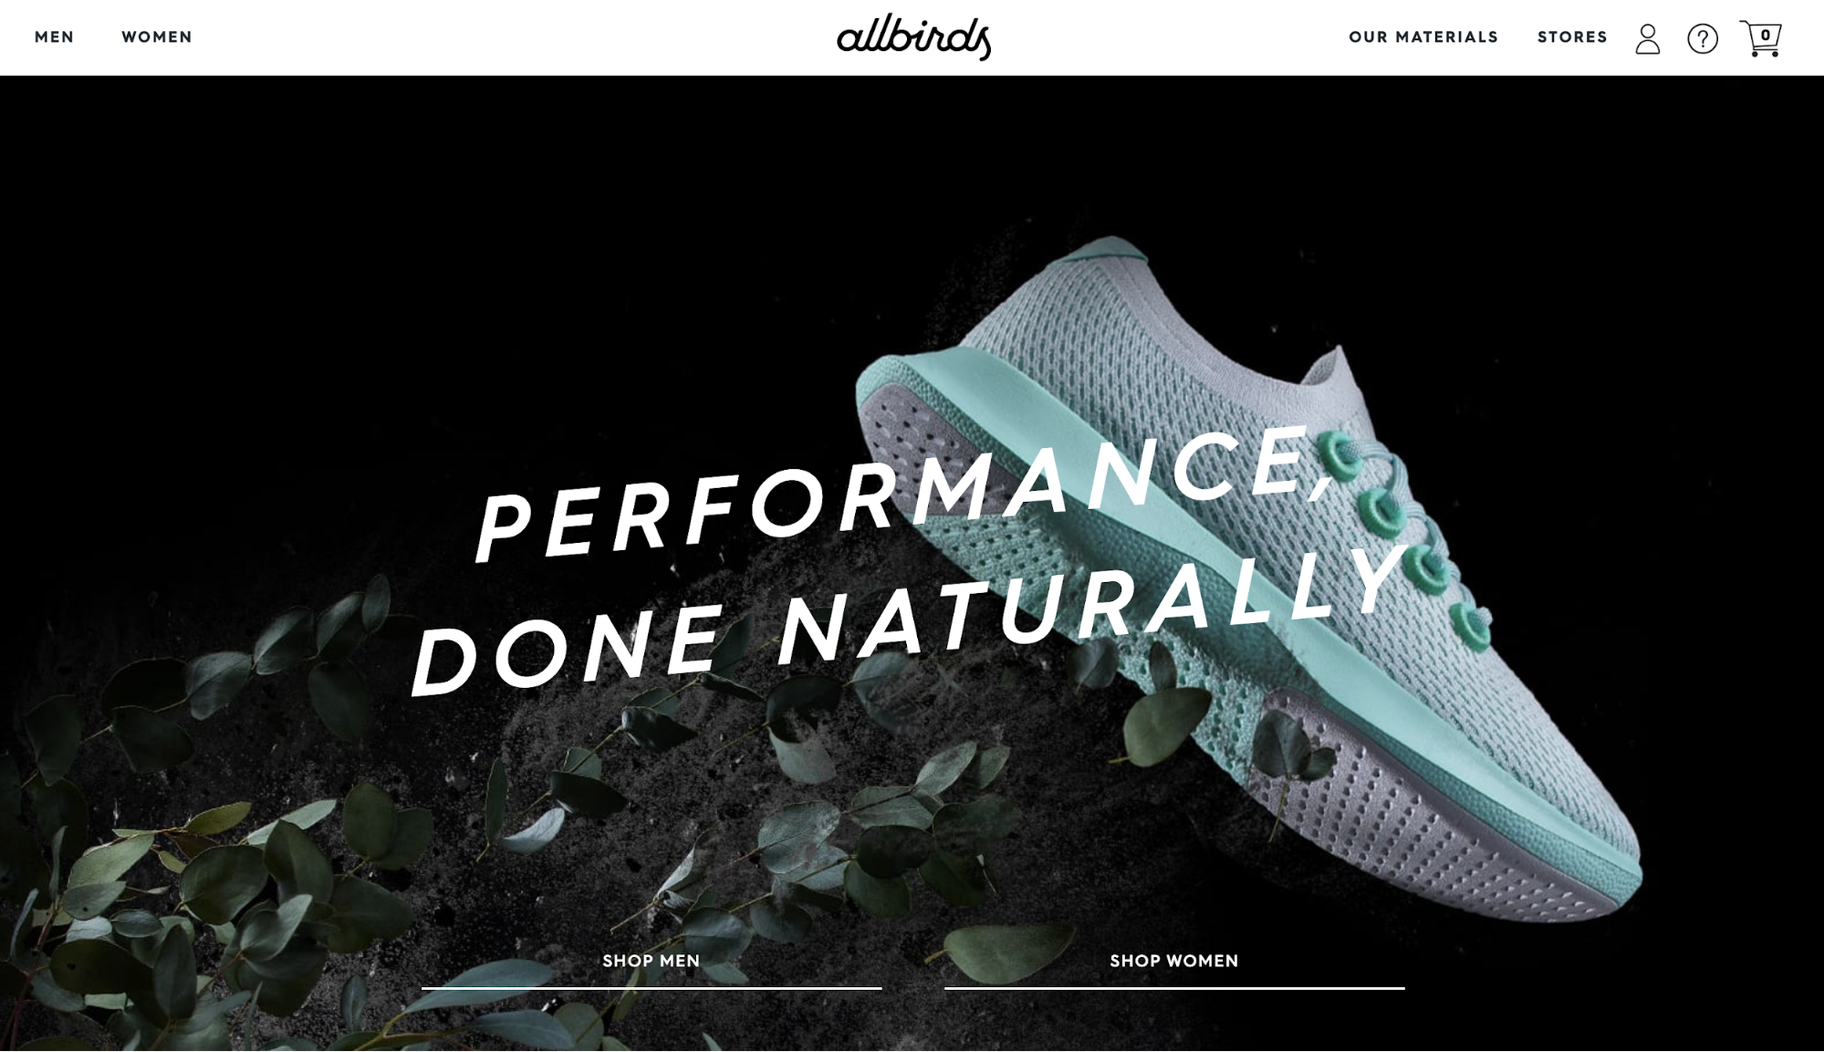 Small Business Website Example: Allbirds